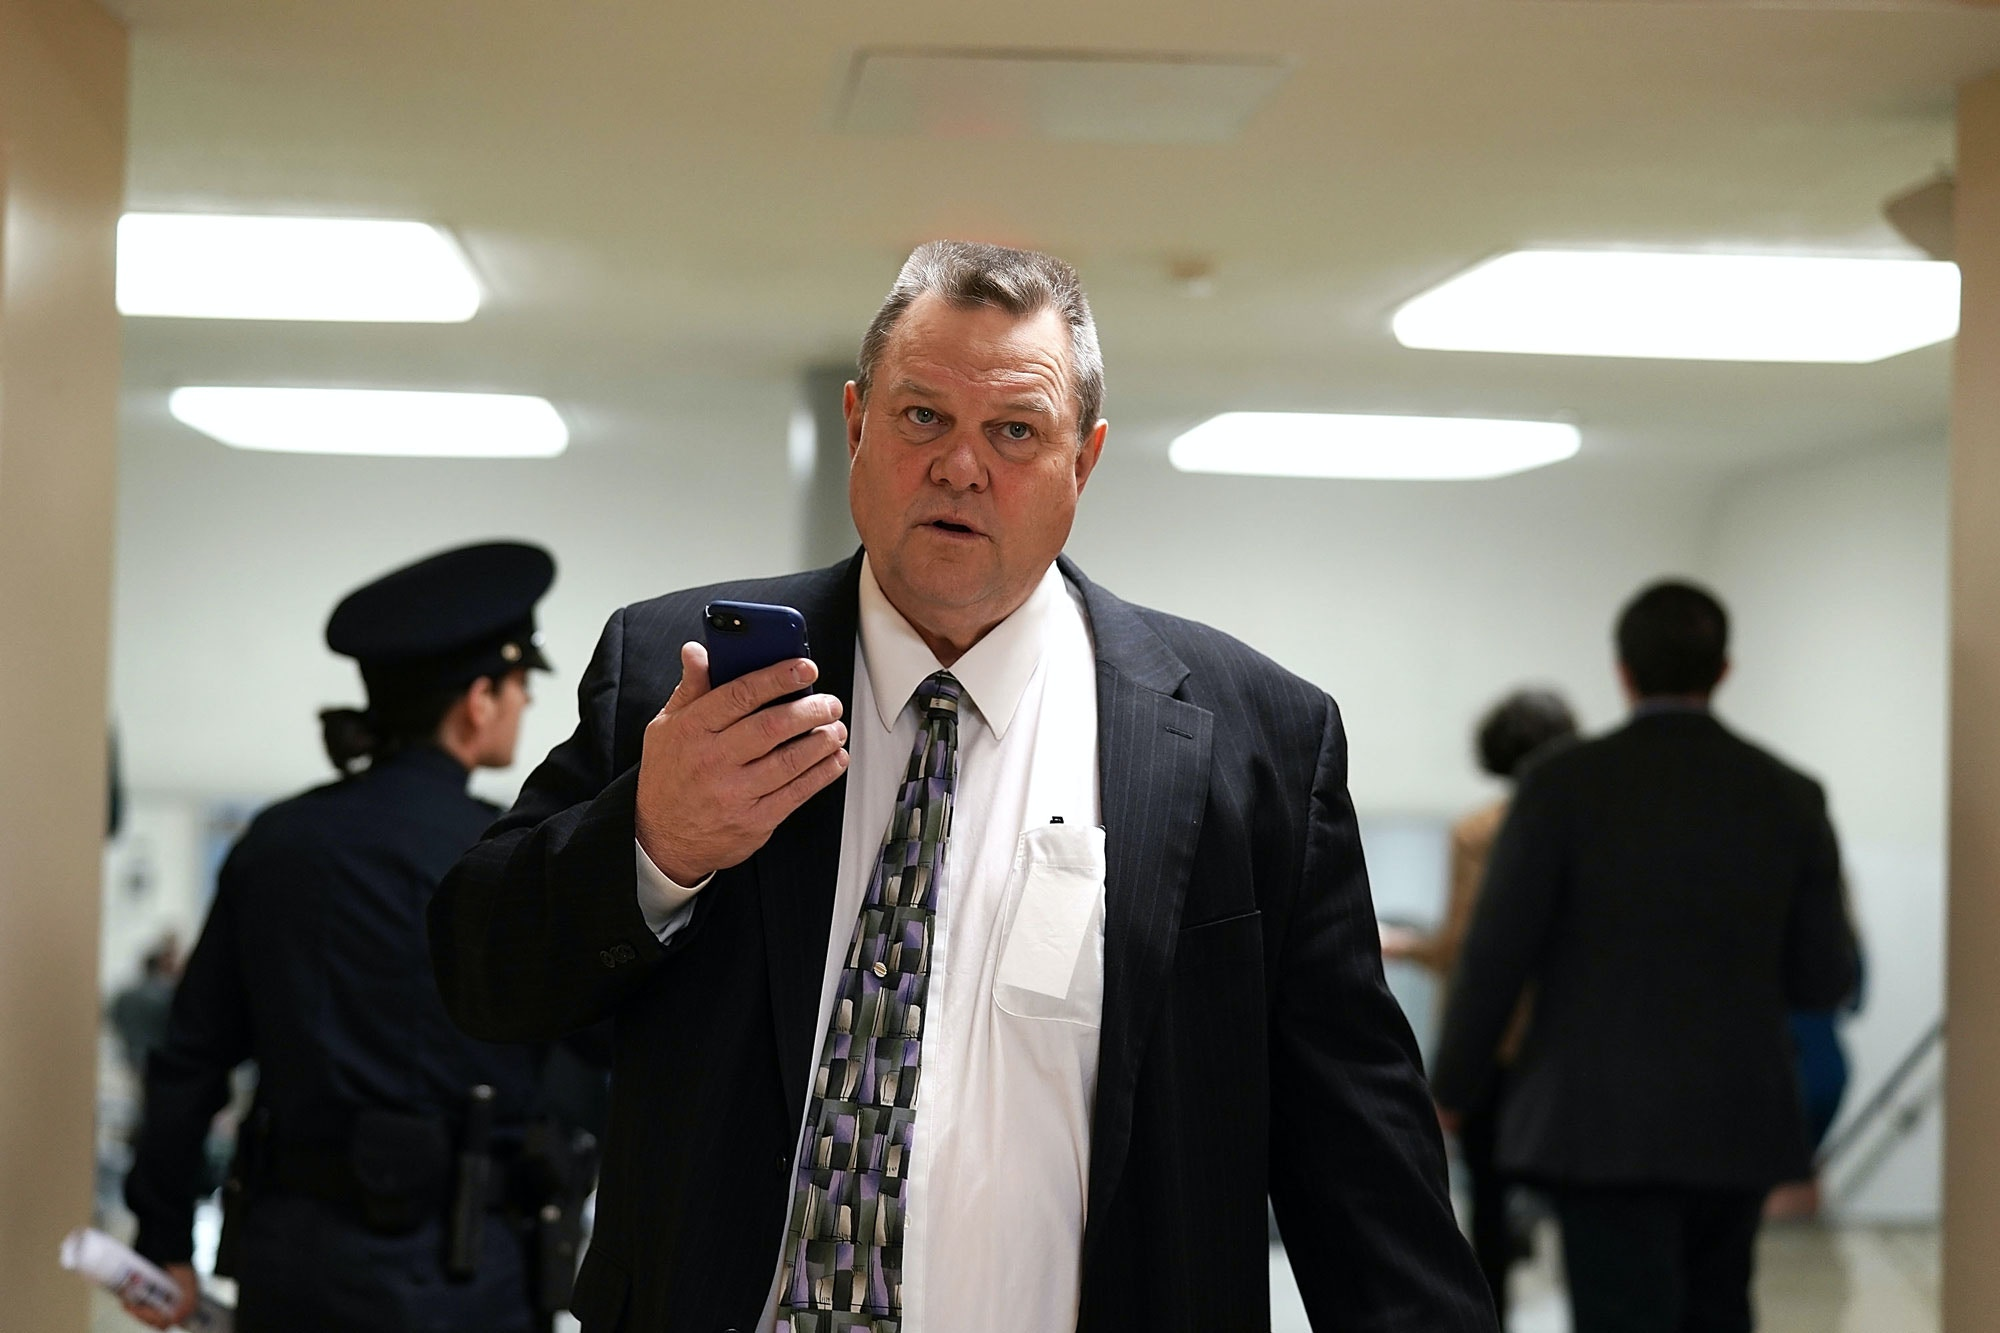 WASHINGTON, DC - JANUARY 17:  U.S. Sen. Jon Tester (D-MT) passes through the basement of the U.S. Capitol prior to a Senate Democratic Policy Luncheon January 17, 2018 in Washington, DC. Senate Democrats held the weekly luncheon to discuss Democratic agenda.  (Photo by Alex Wong/Getty Images)